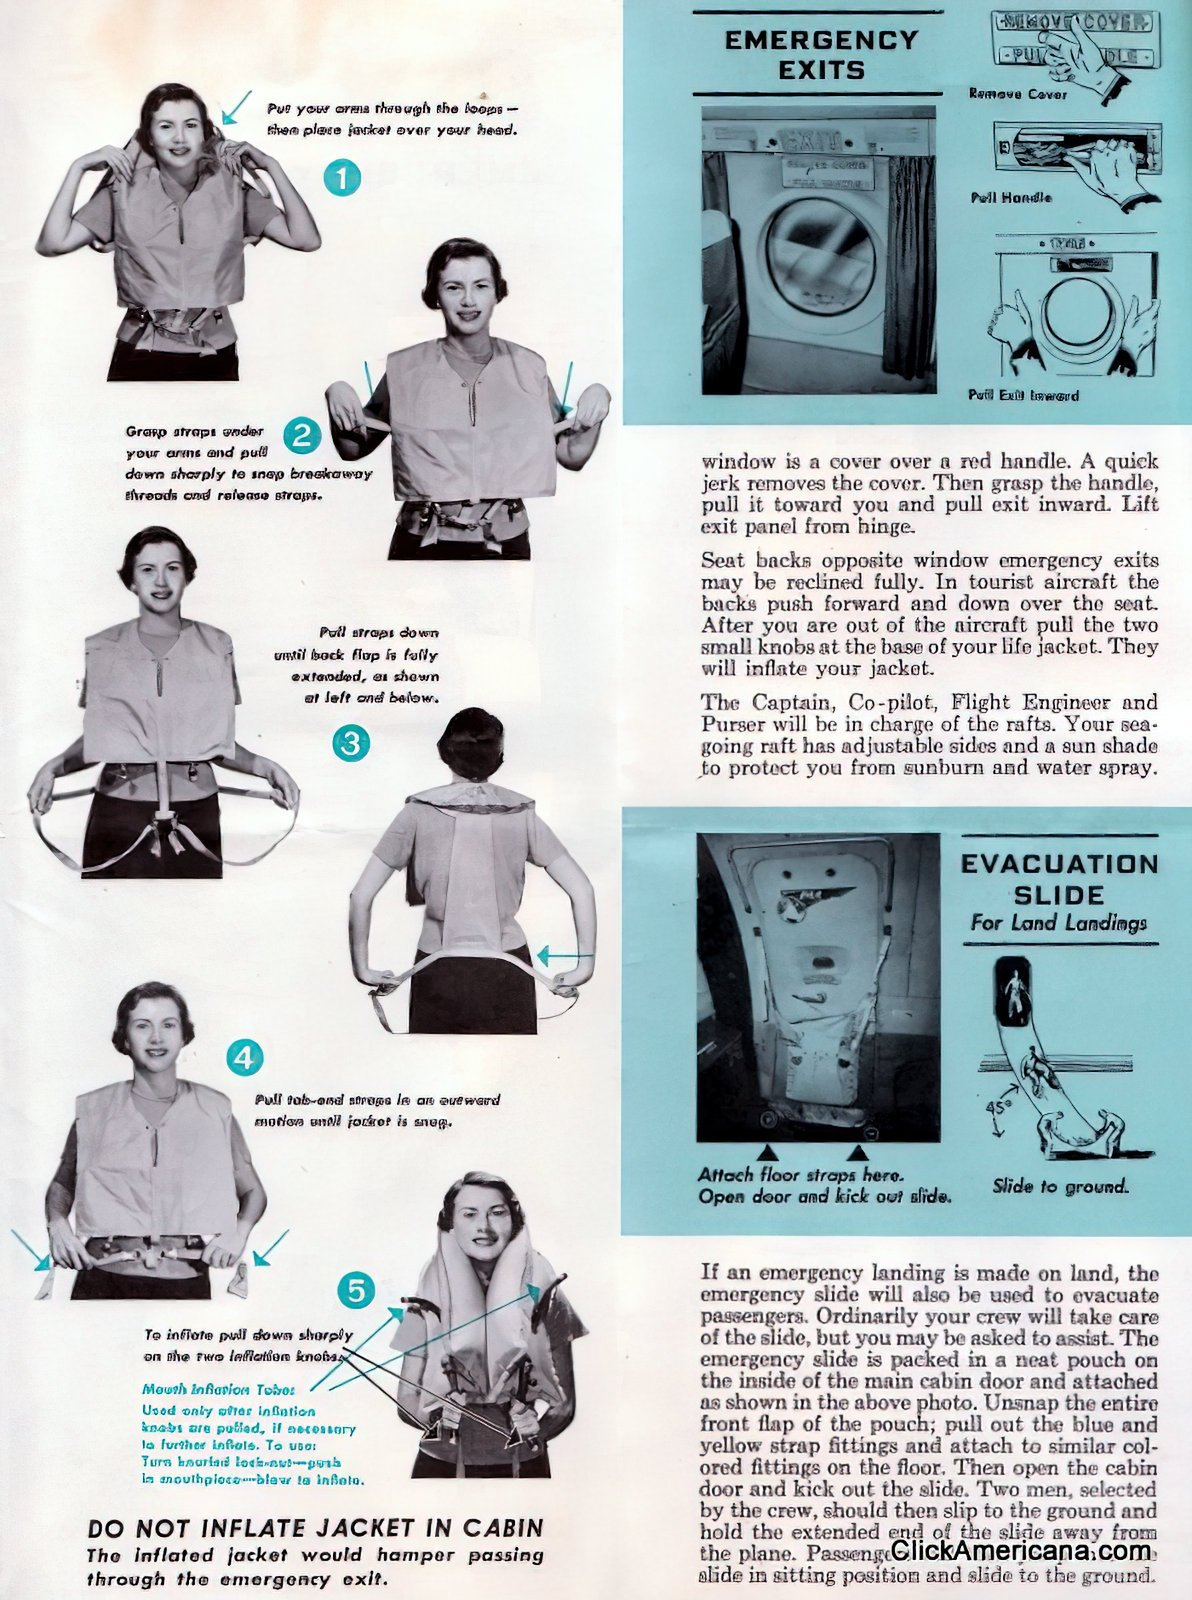 1950s airline emergency instructions safety brochure